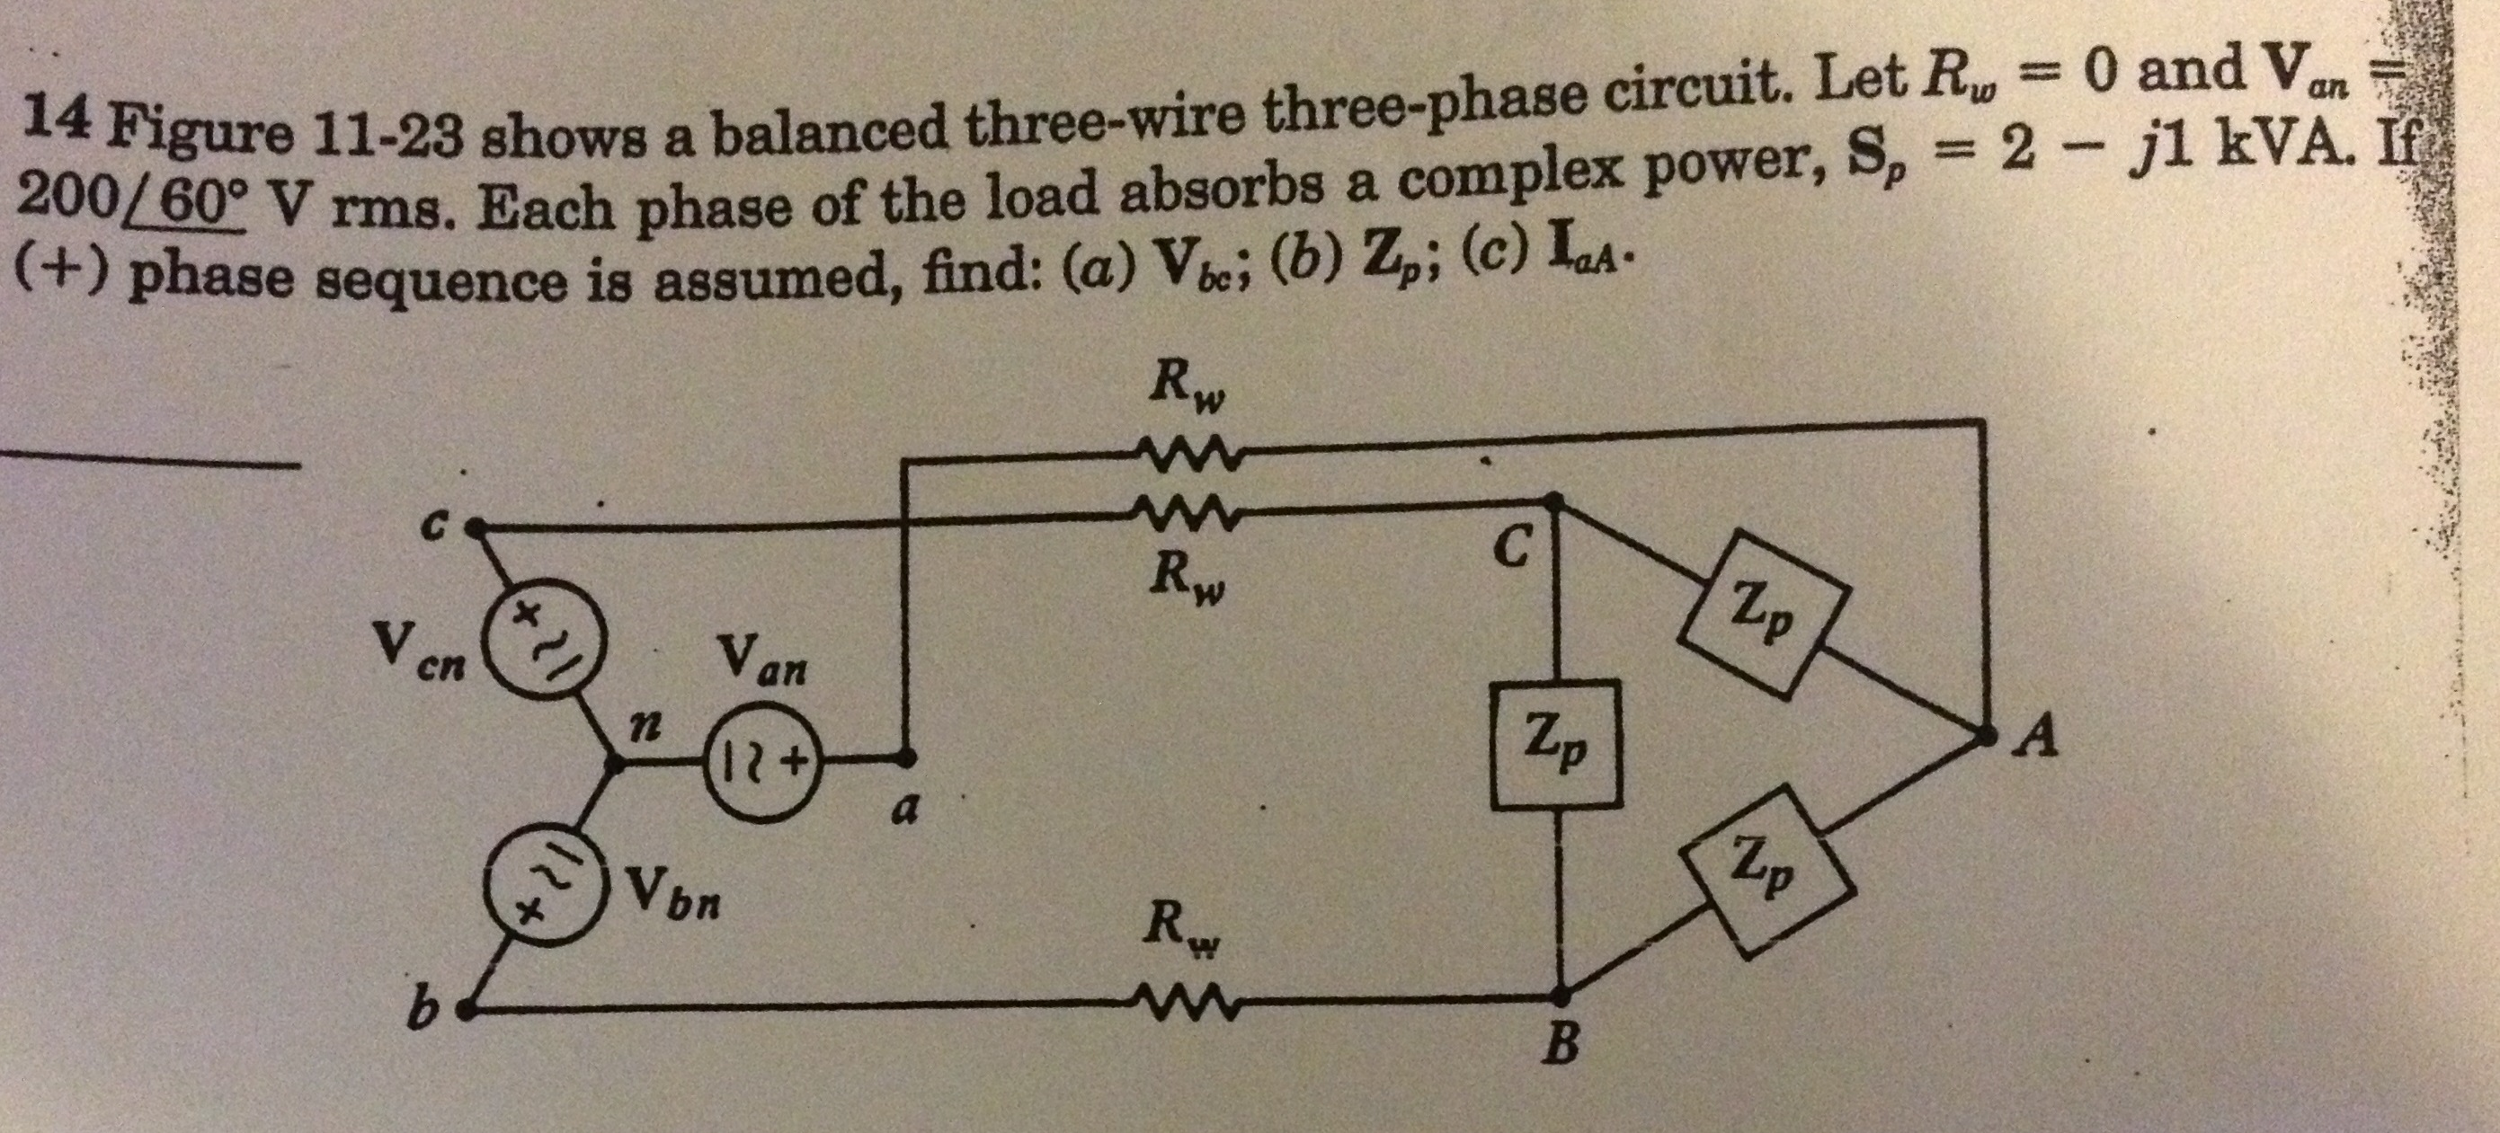 Figure 11-23 shows a balanced three-wire three-pha